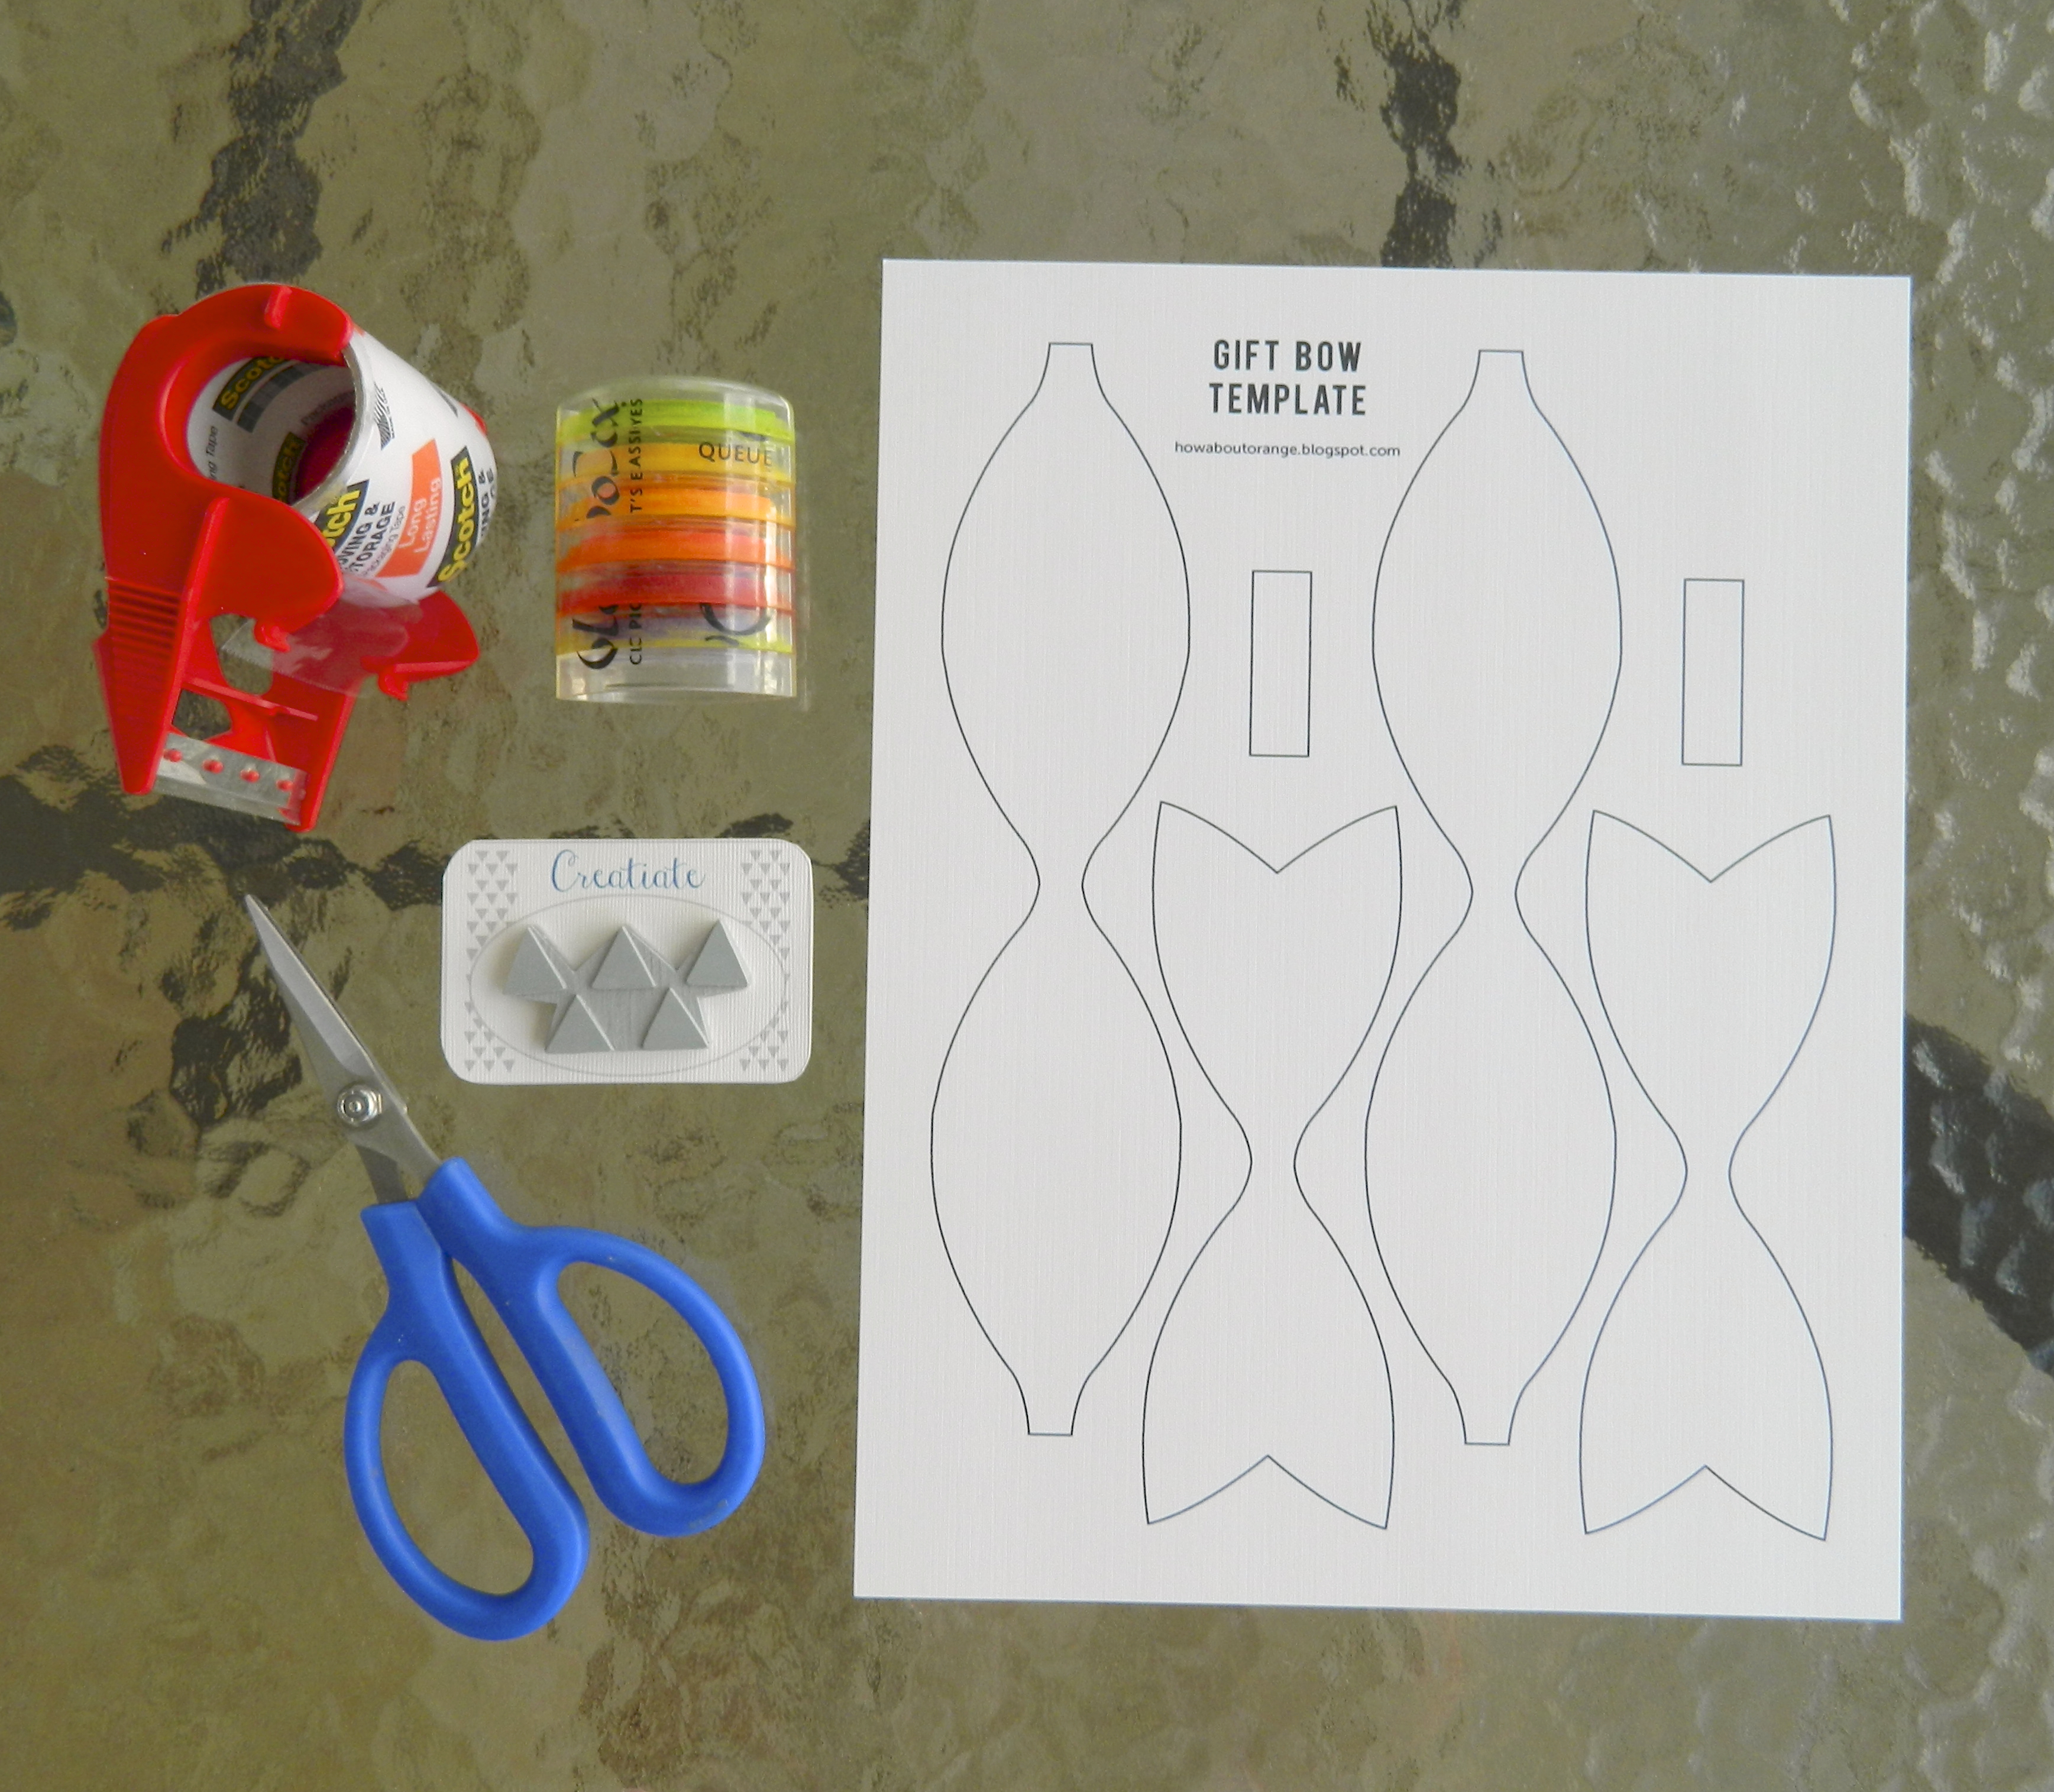 Diy gift bow make it take a bow creatiate creatiate blog diy stamped gift bow solutioingenieria Images